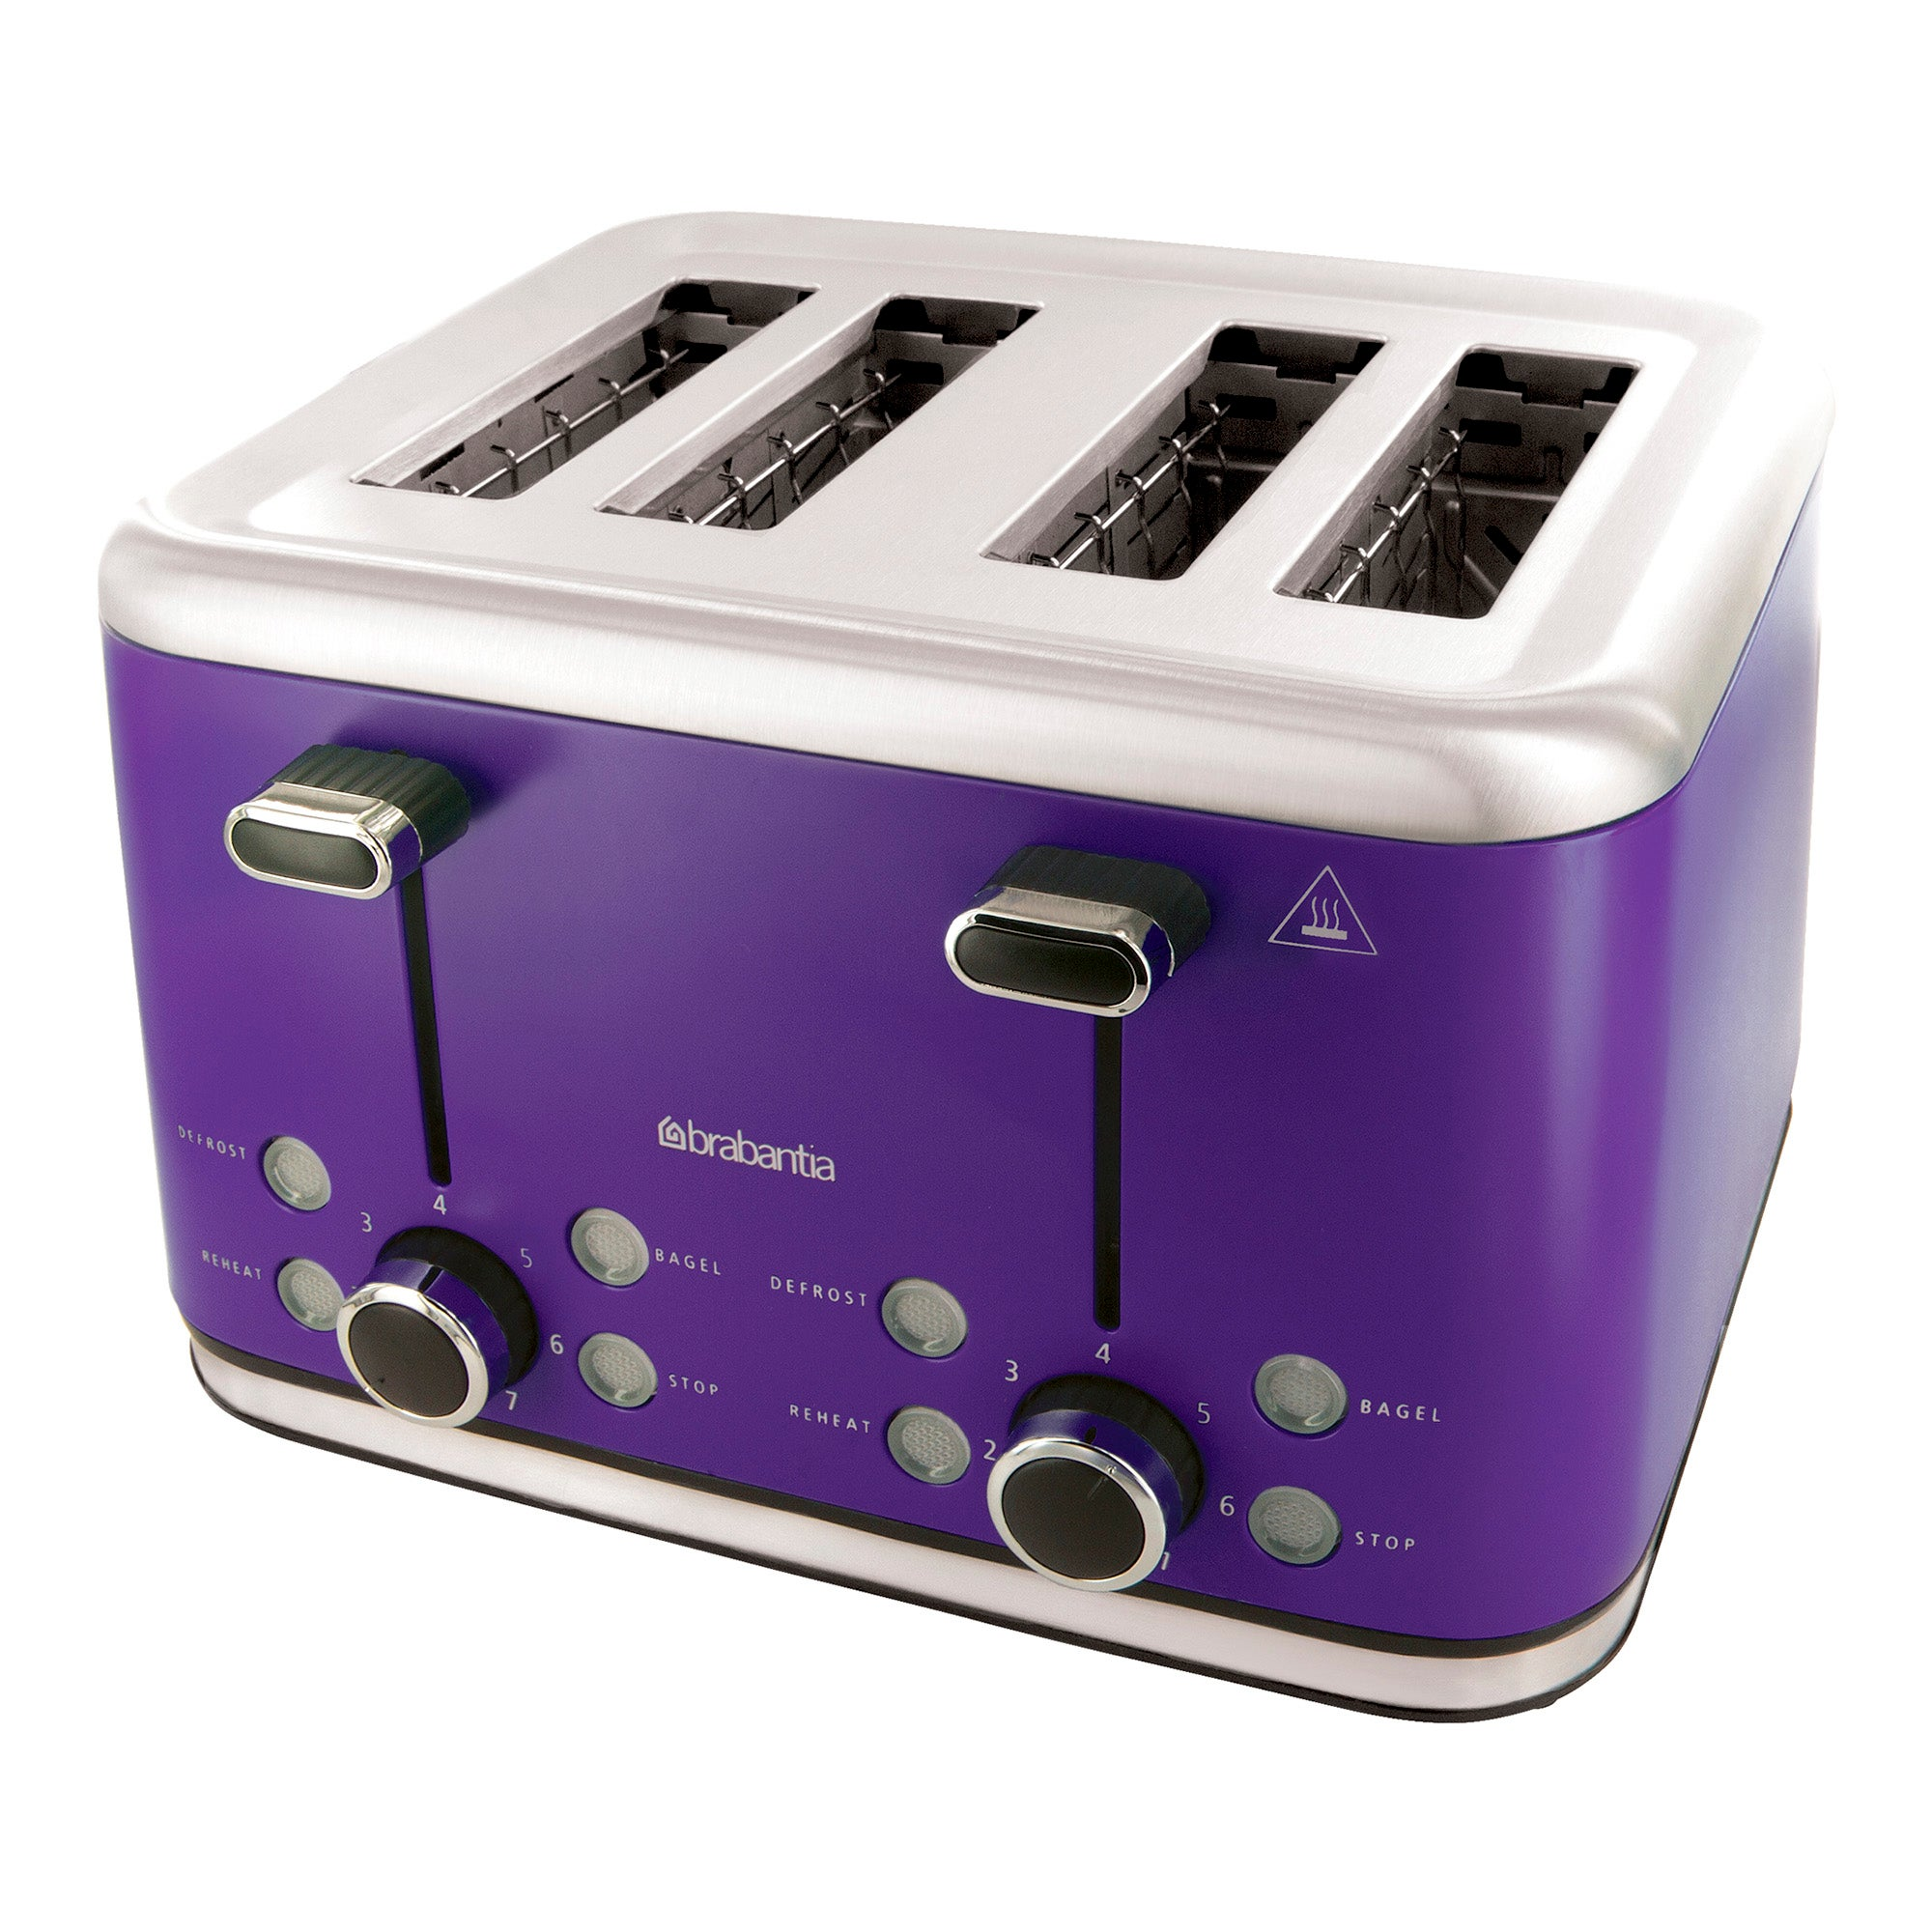 Brabantia Purple Stainless Steel 4 Slice Toaster